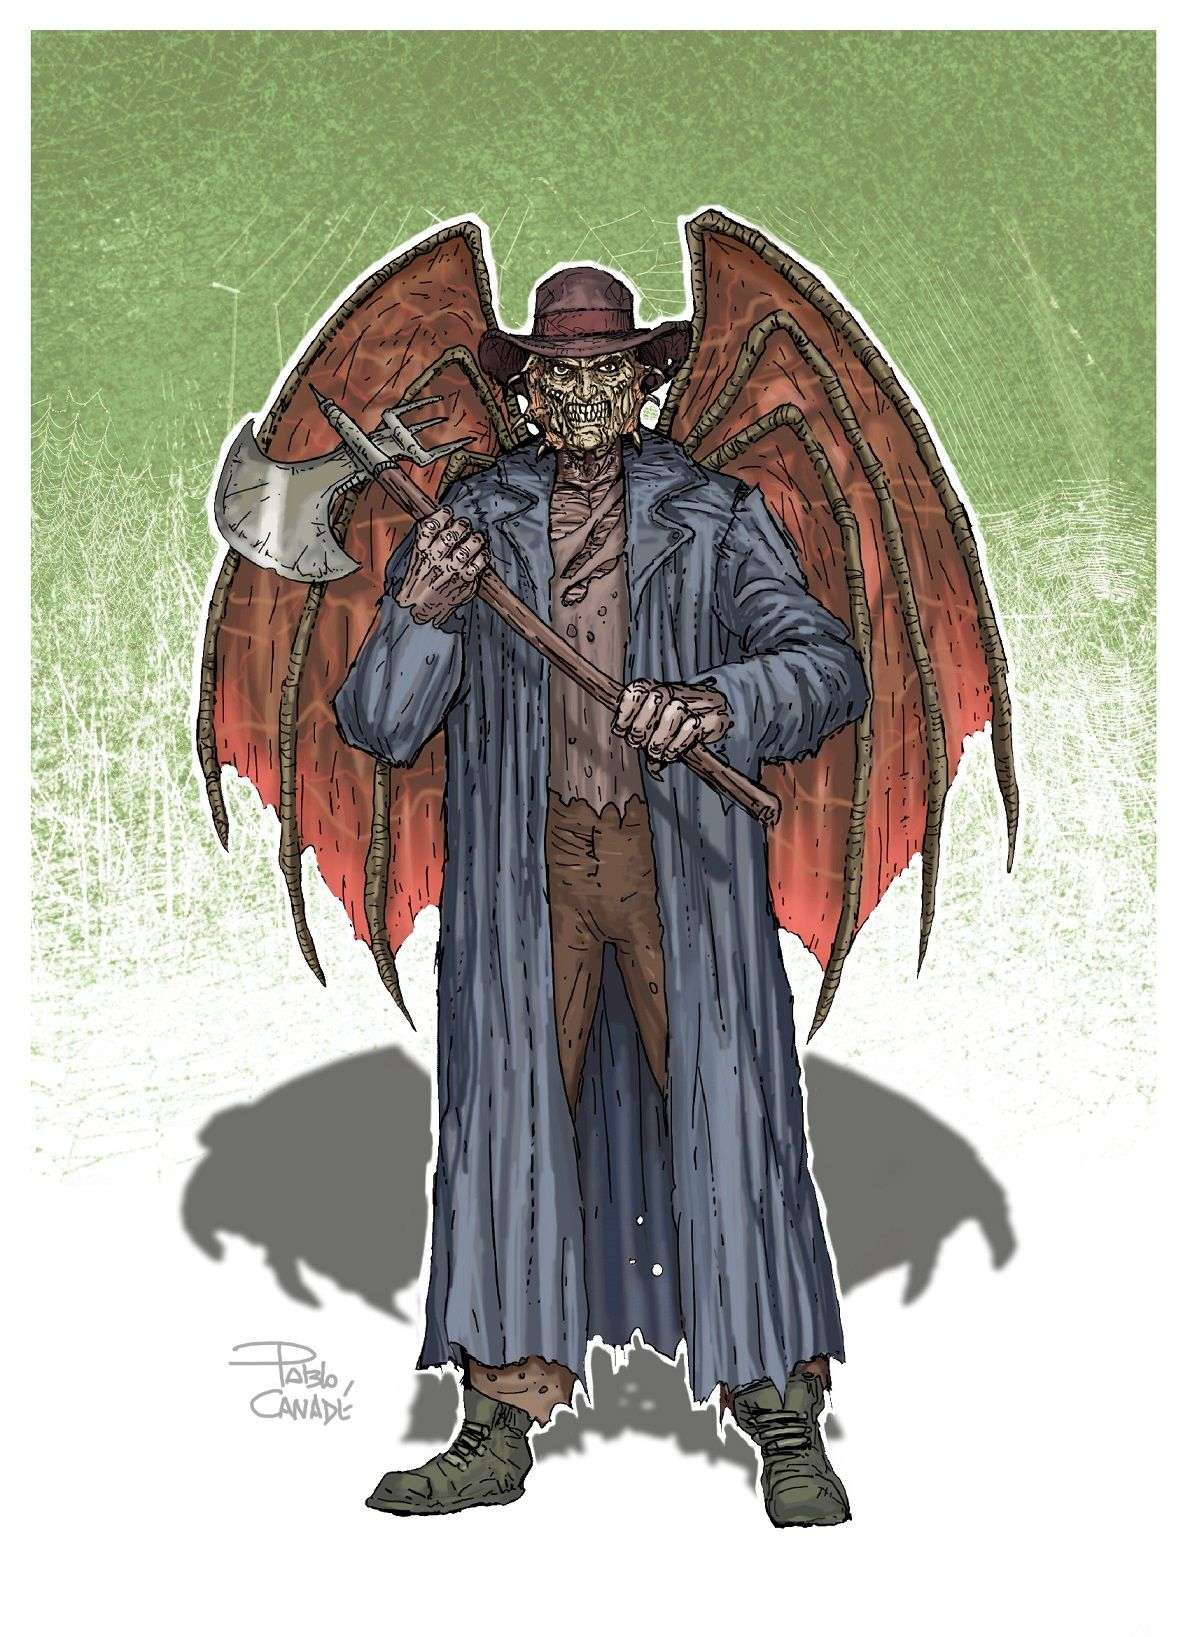 Jeepers Creepers Horror Villains Horror Artwork Horror Movie Art